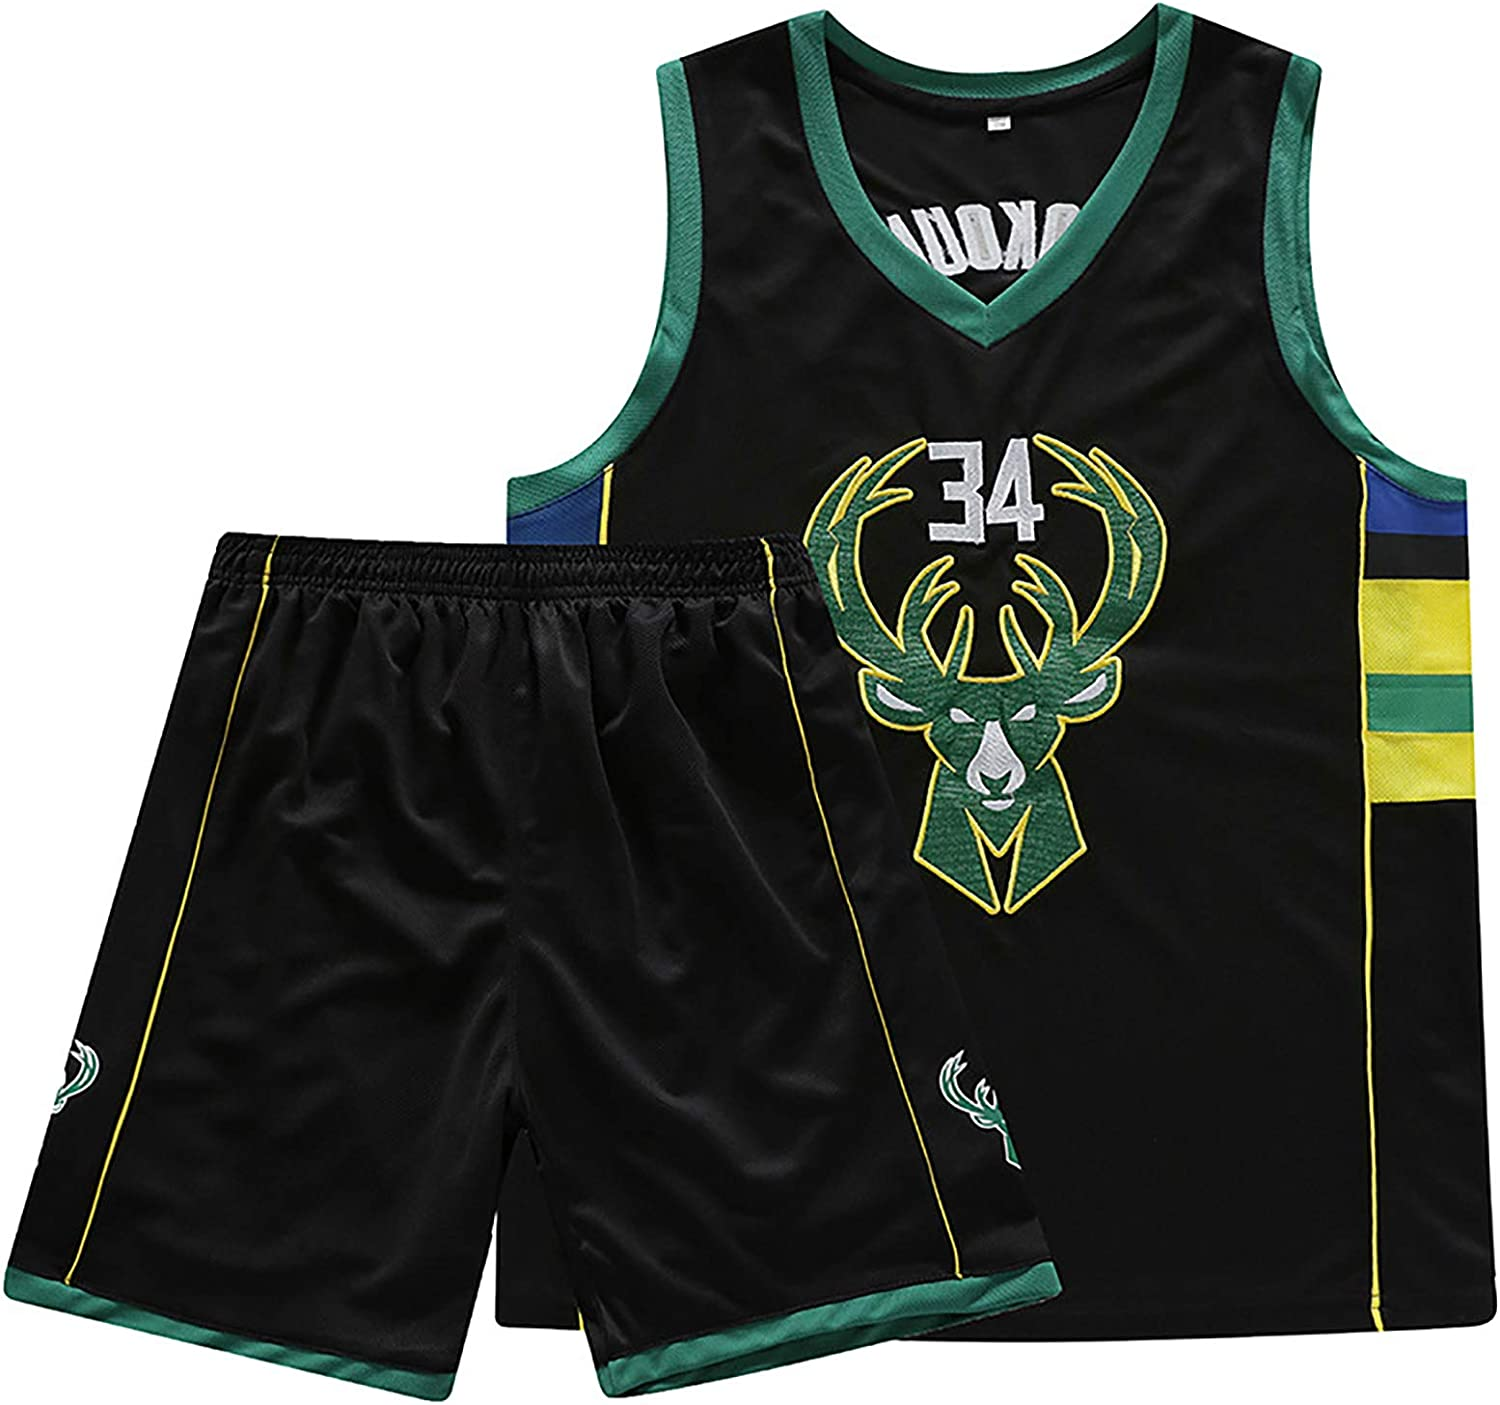 TYUIY Basketball Swingman Jersey,for Antetokounmpo Basketball Vest Shorts Suit,for Milwaukee 34 Embroidery Basketball Uniform,The Best Gift for Fans White-2XL